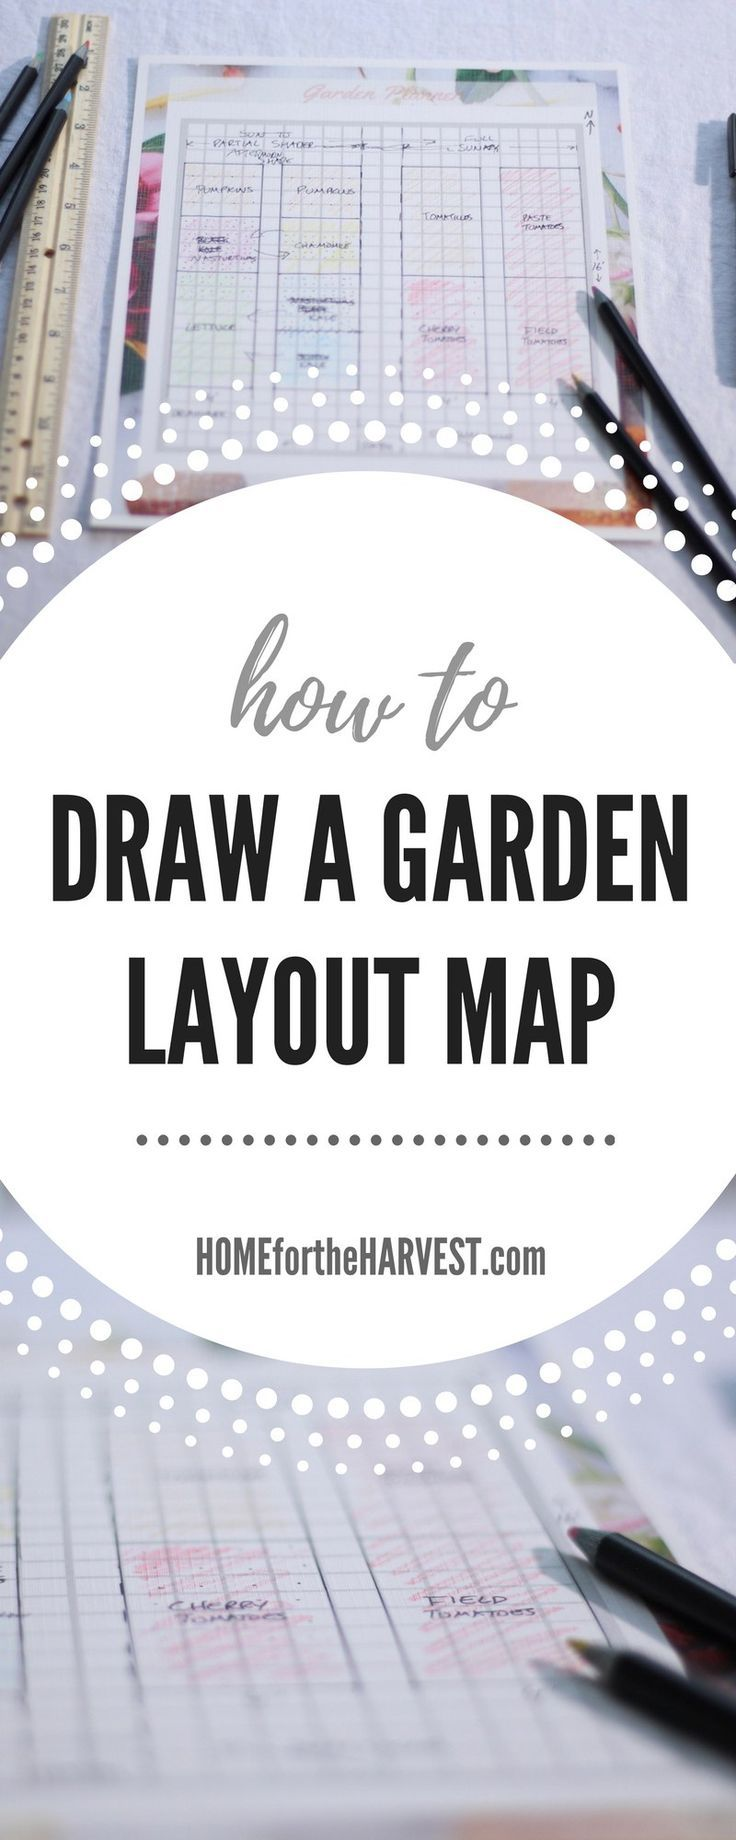 Garden Map How to Draw an Effective Annual Garden Layout is part of Vegetable garden planner, Garden design layout, Garden layout vegetable, Garden layout, Garden planner, Vegetable garden design - Use these easytofollow steps to draw your own garden layout map  These instructions will teach you how to map out a plan for your garden!